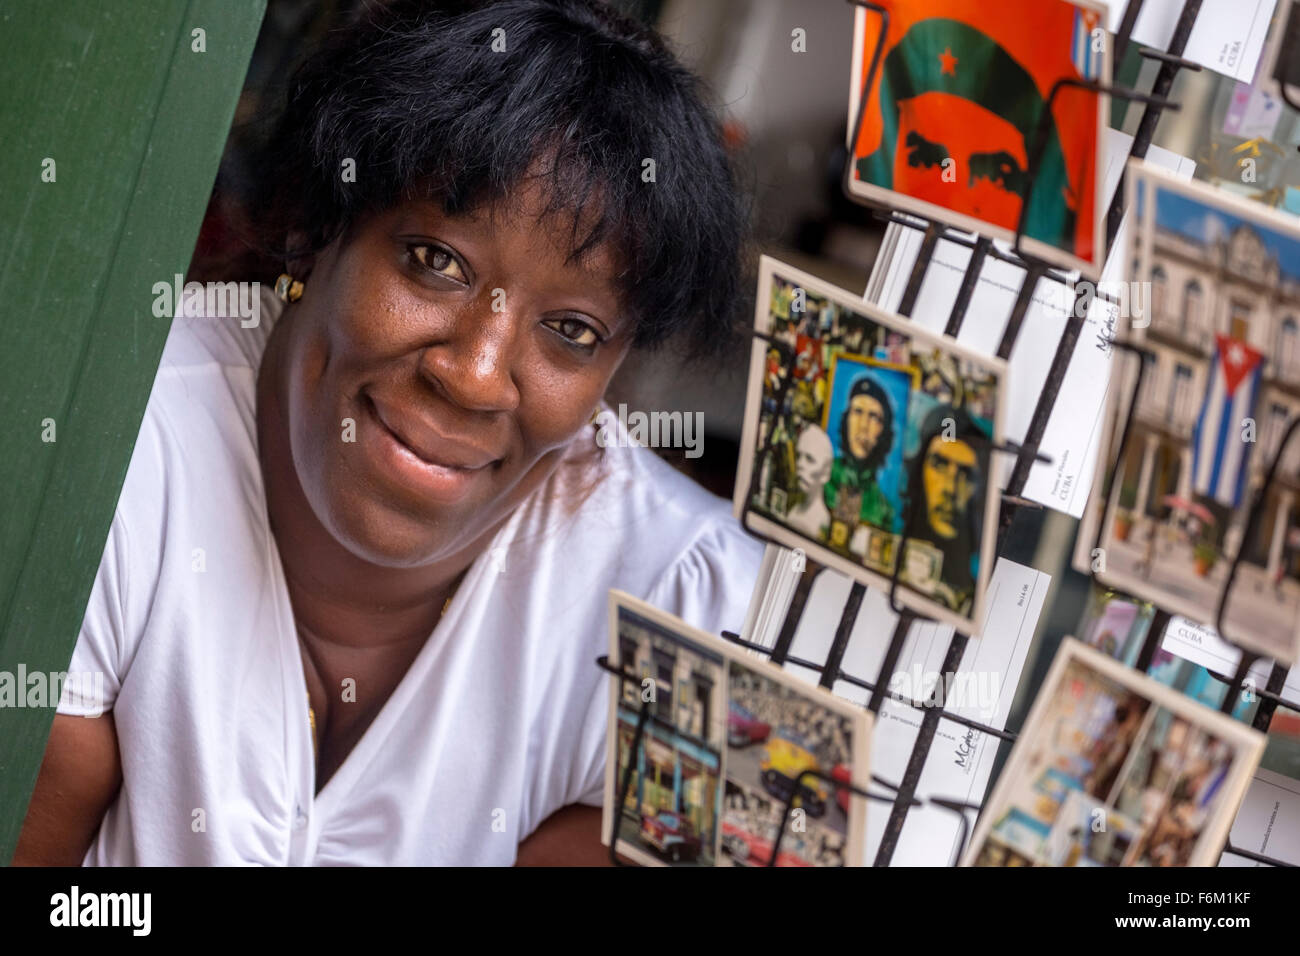 Kiosk saleswoman, Cuban, Postcard stands with postcards of Ernesto Che Guevara, souvenirs, memories, La Habana, - Stock Image